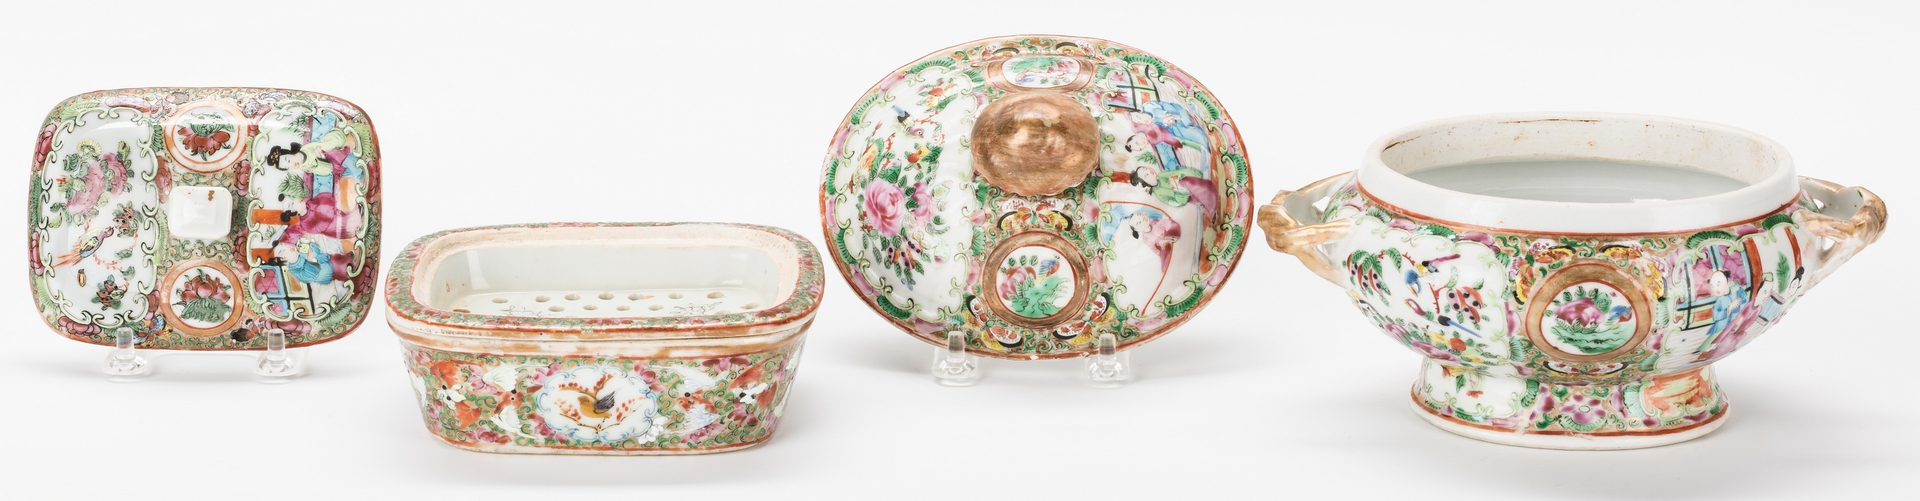 Lot 26: 5 Pcs. Chinese Rose Medallion Porcelain, incl. Pitcher